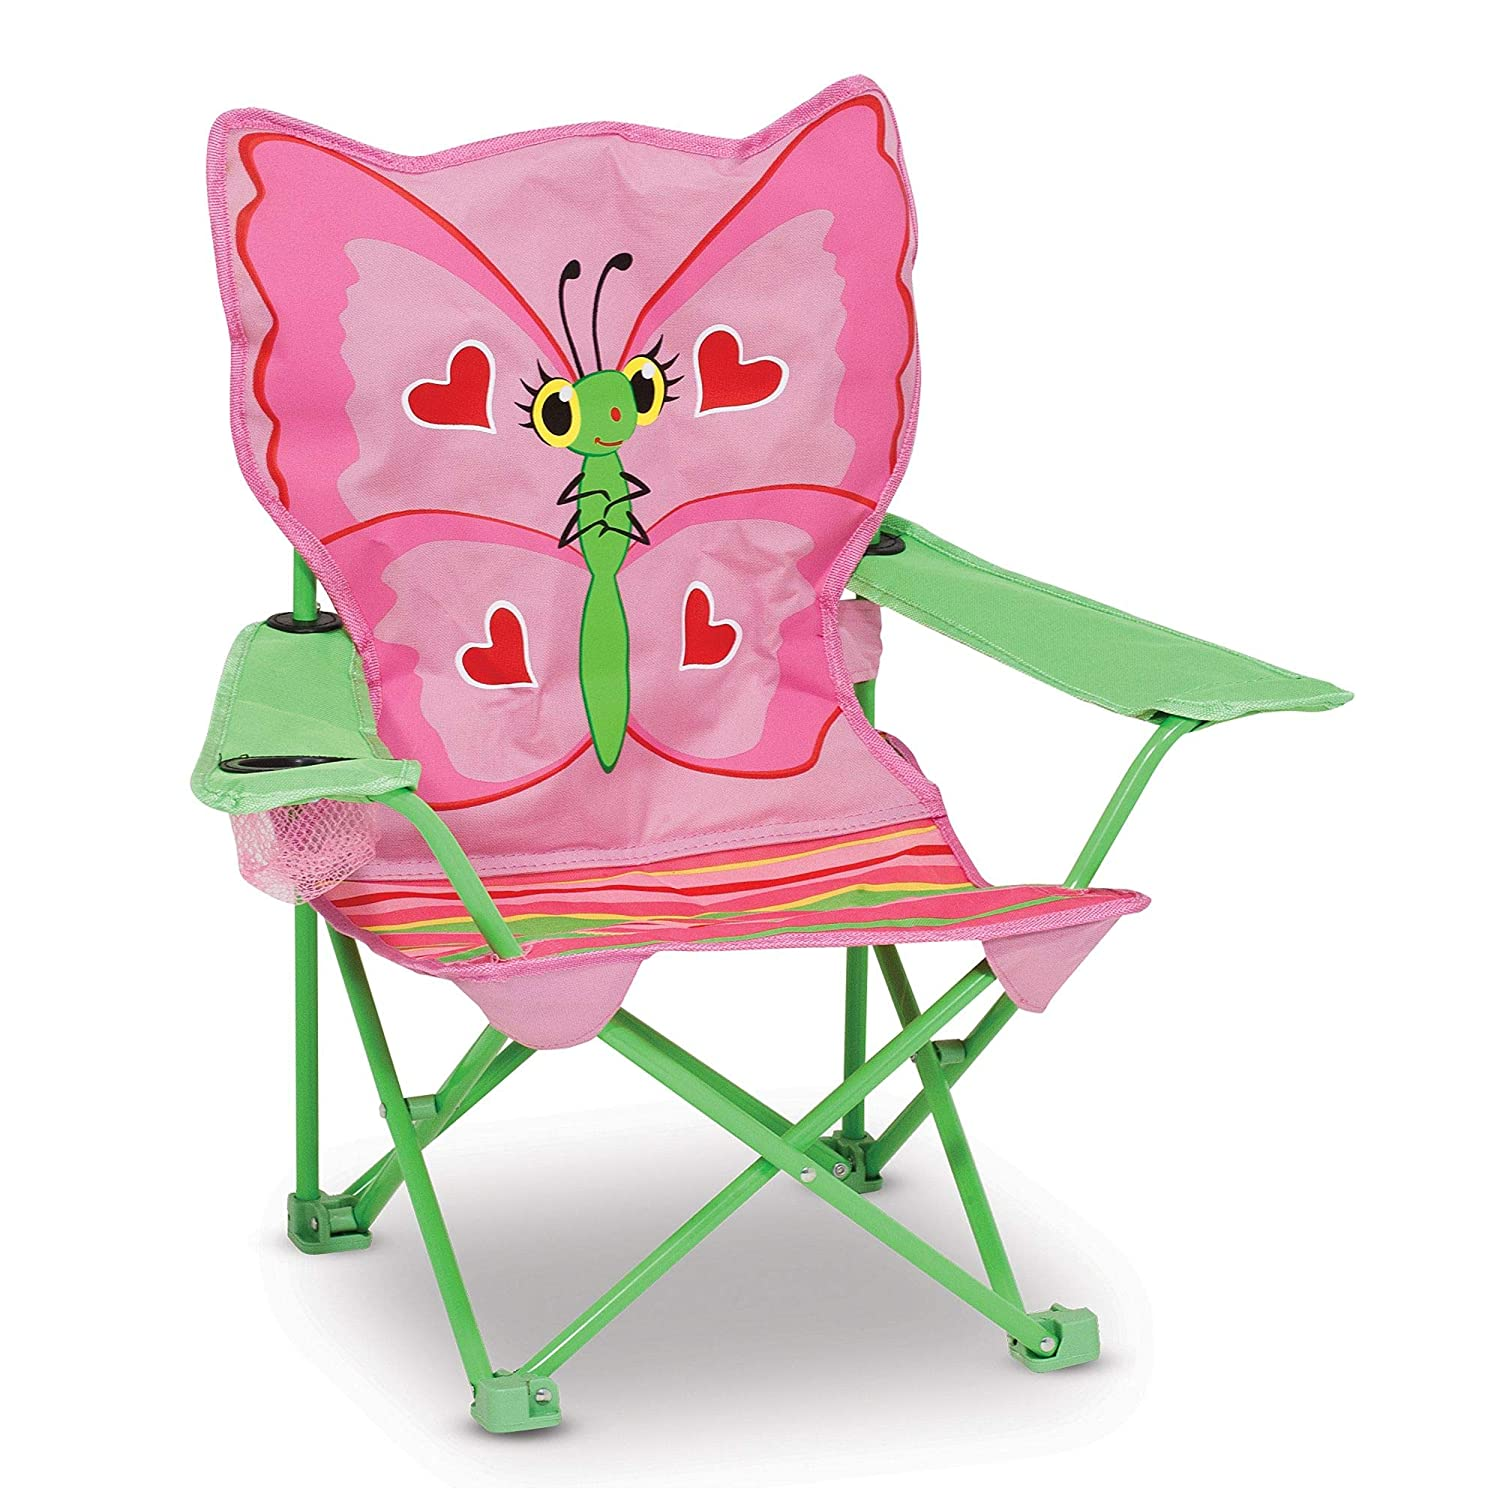 "Melissa & Doug Bella Butterfly Child's Outdoor Chair, Easy to Open, Handy Cup Holder, Cleanable Materials, Carrying Bag, 23.7"" H x 6.7"" W x 6.7"" L"